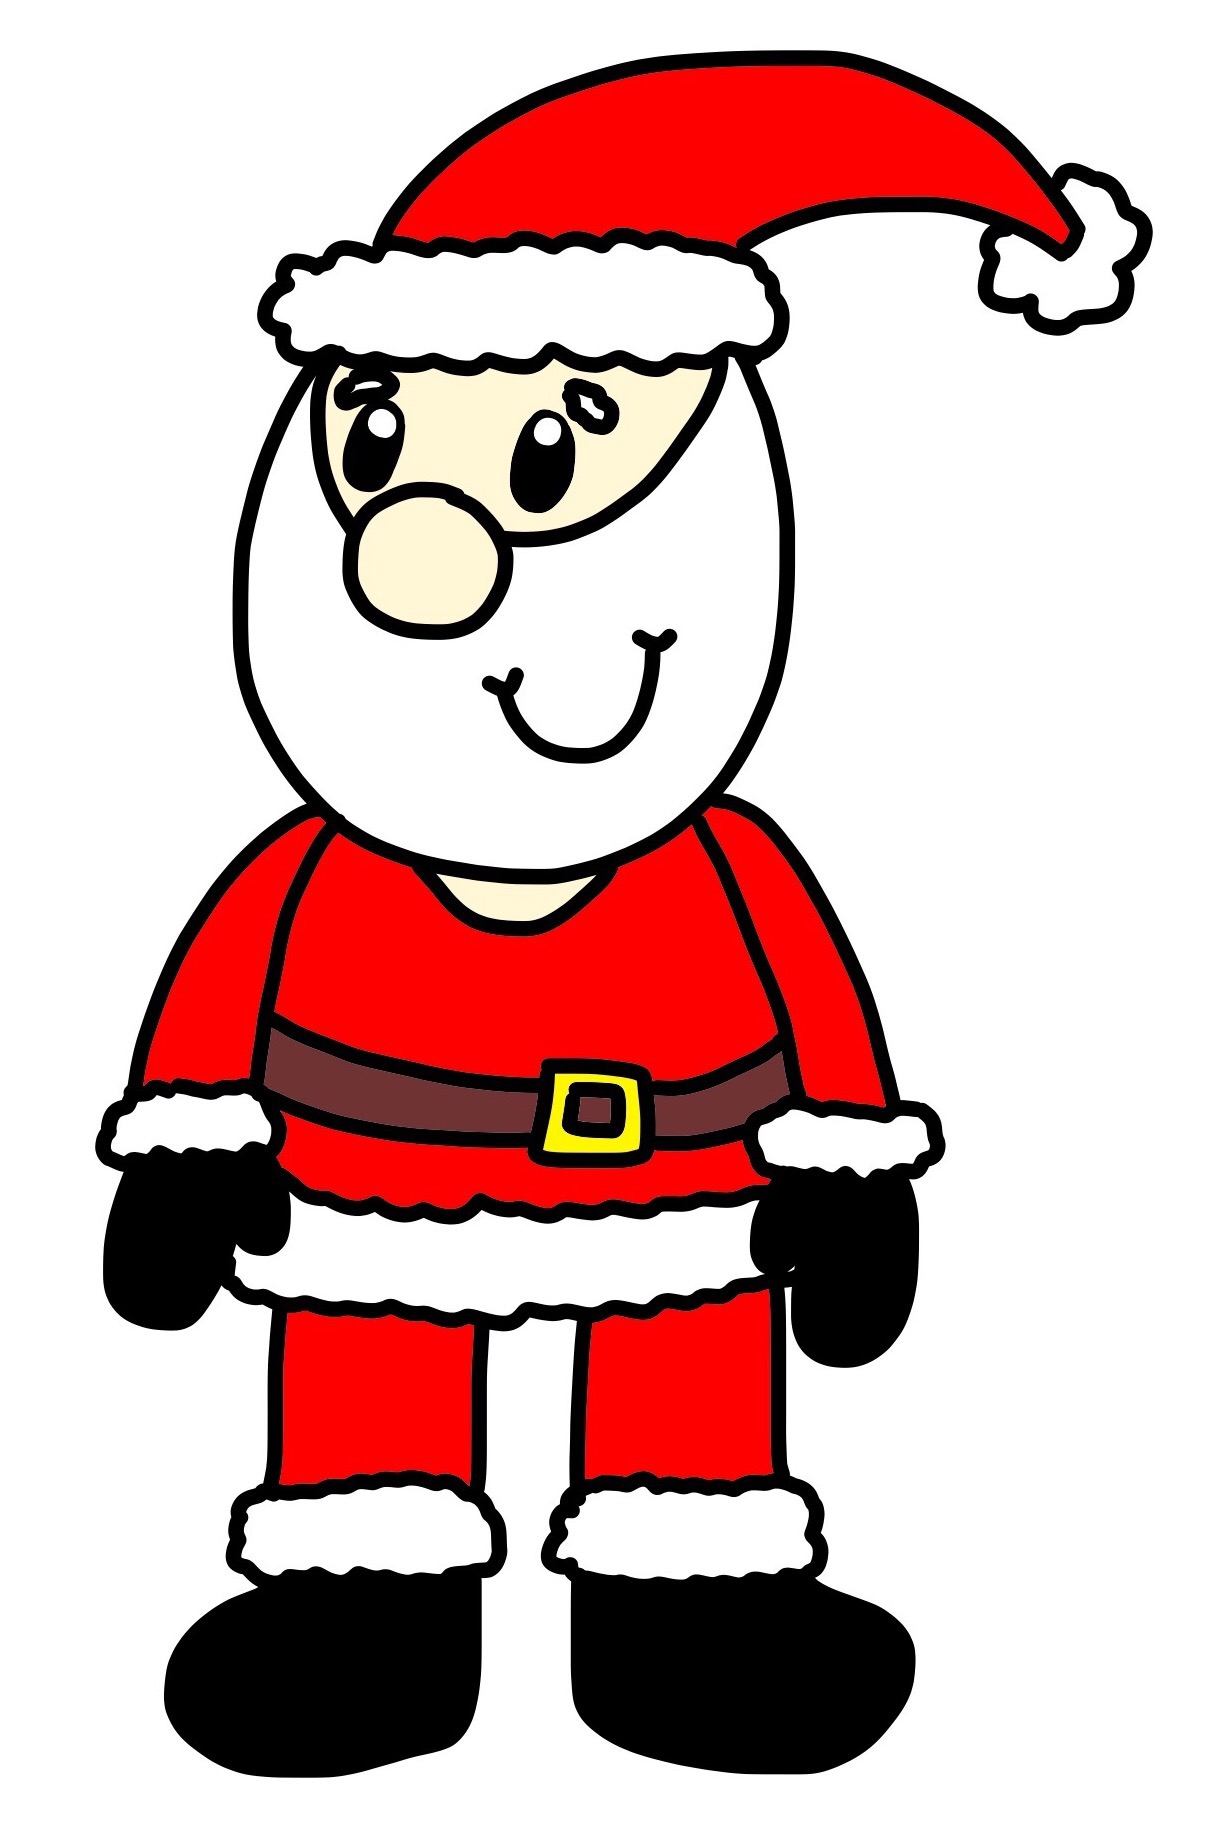 Father Christmas Cartoon Images : father, christmas, cartoon, images, Cartoon, Father, Christmas, COMPETITION, Hannah, Coombs